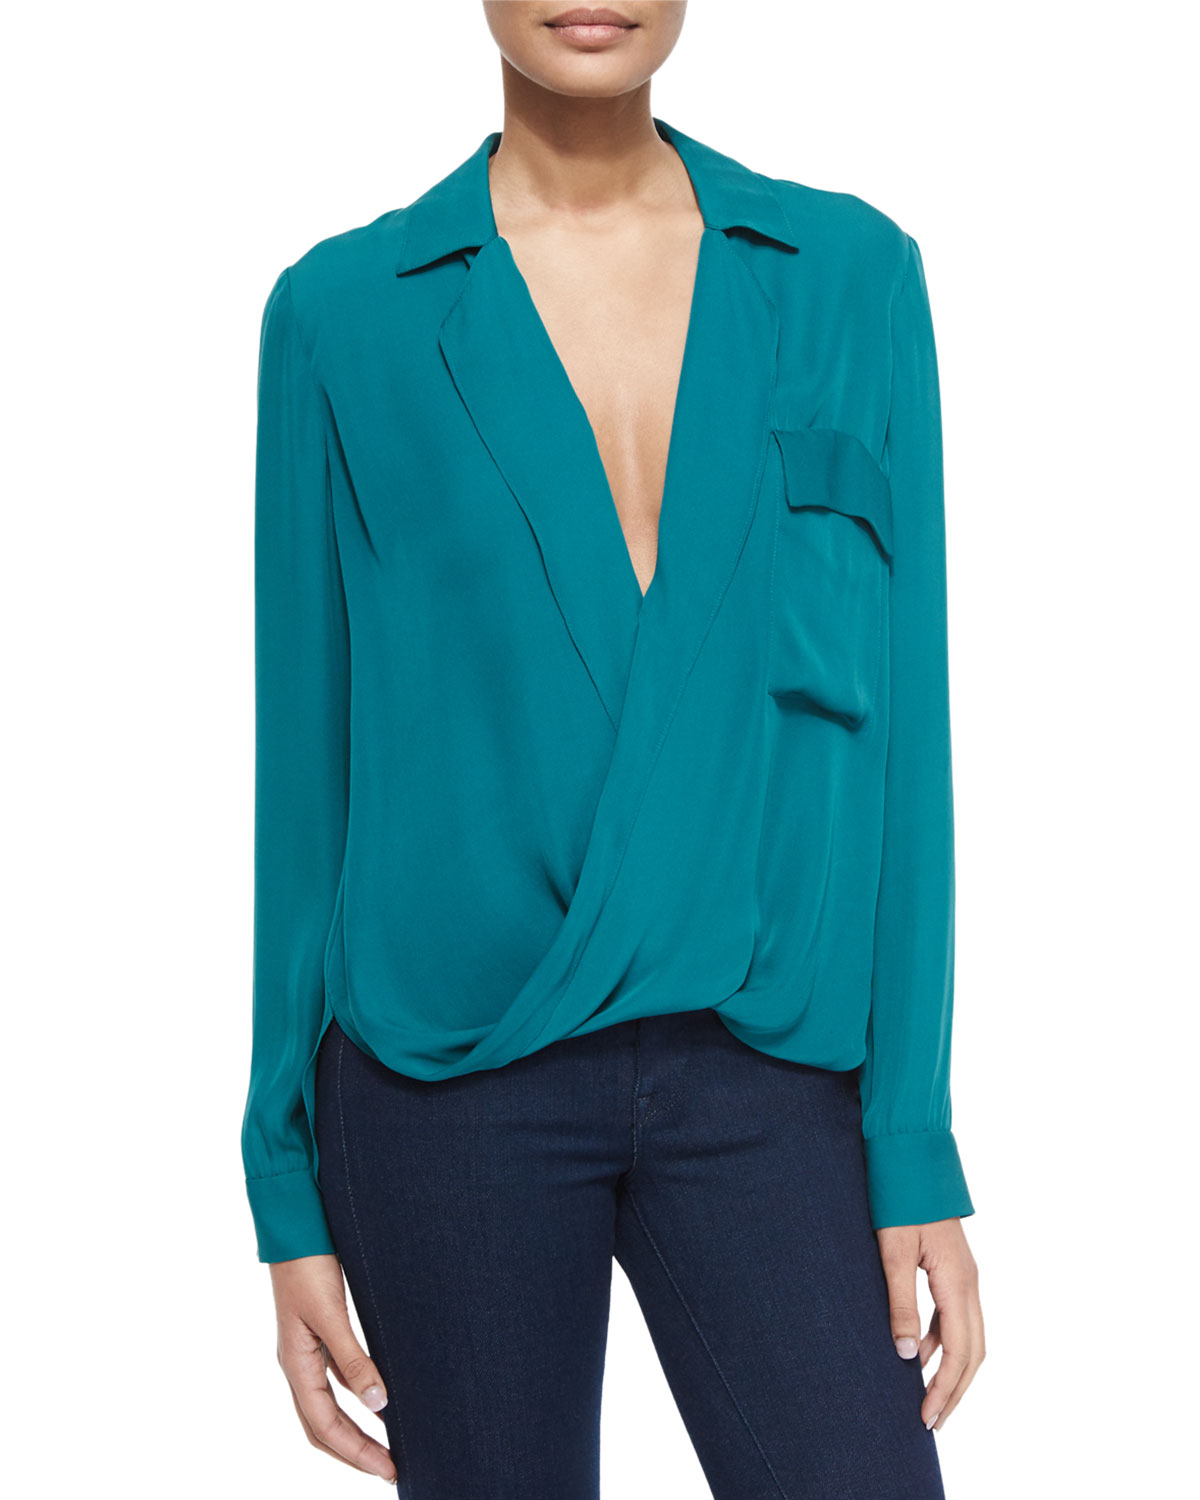 Lola Long-Sleeve Silk Blouse, Teal (Blue), Size: LARGE - L'Agence